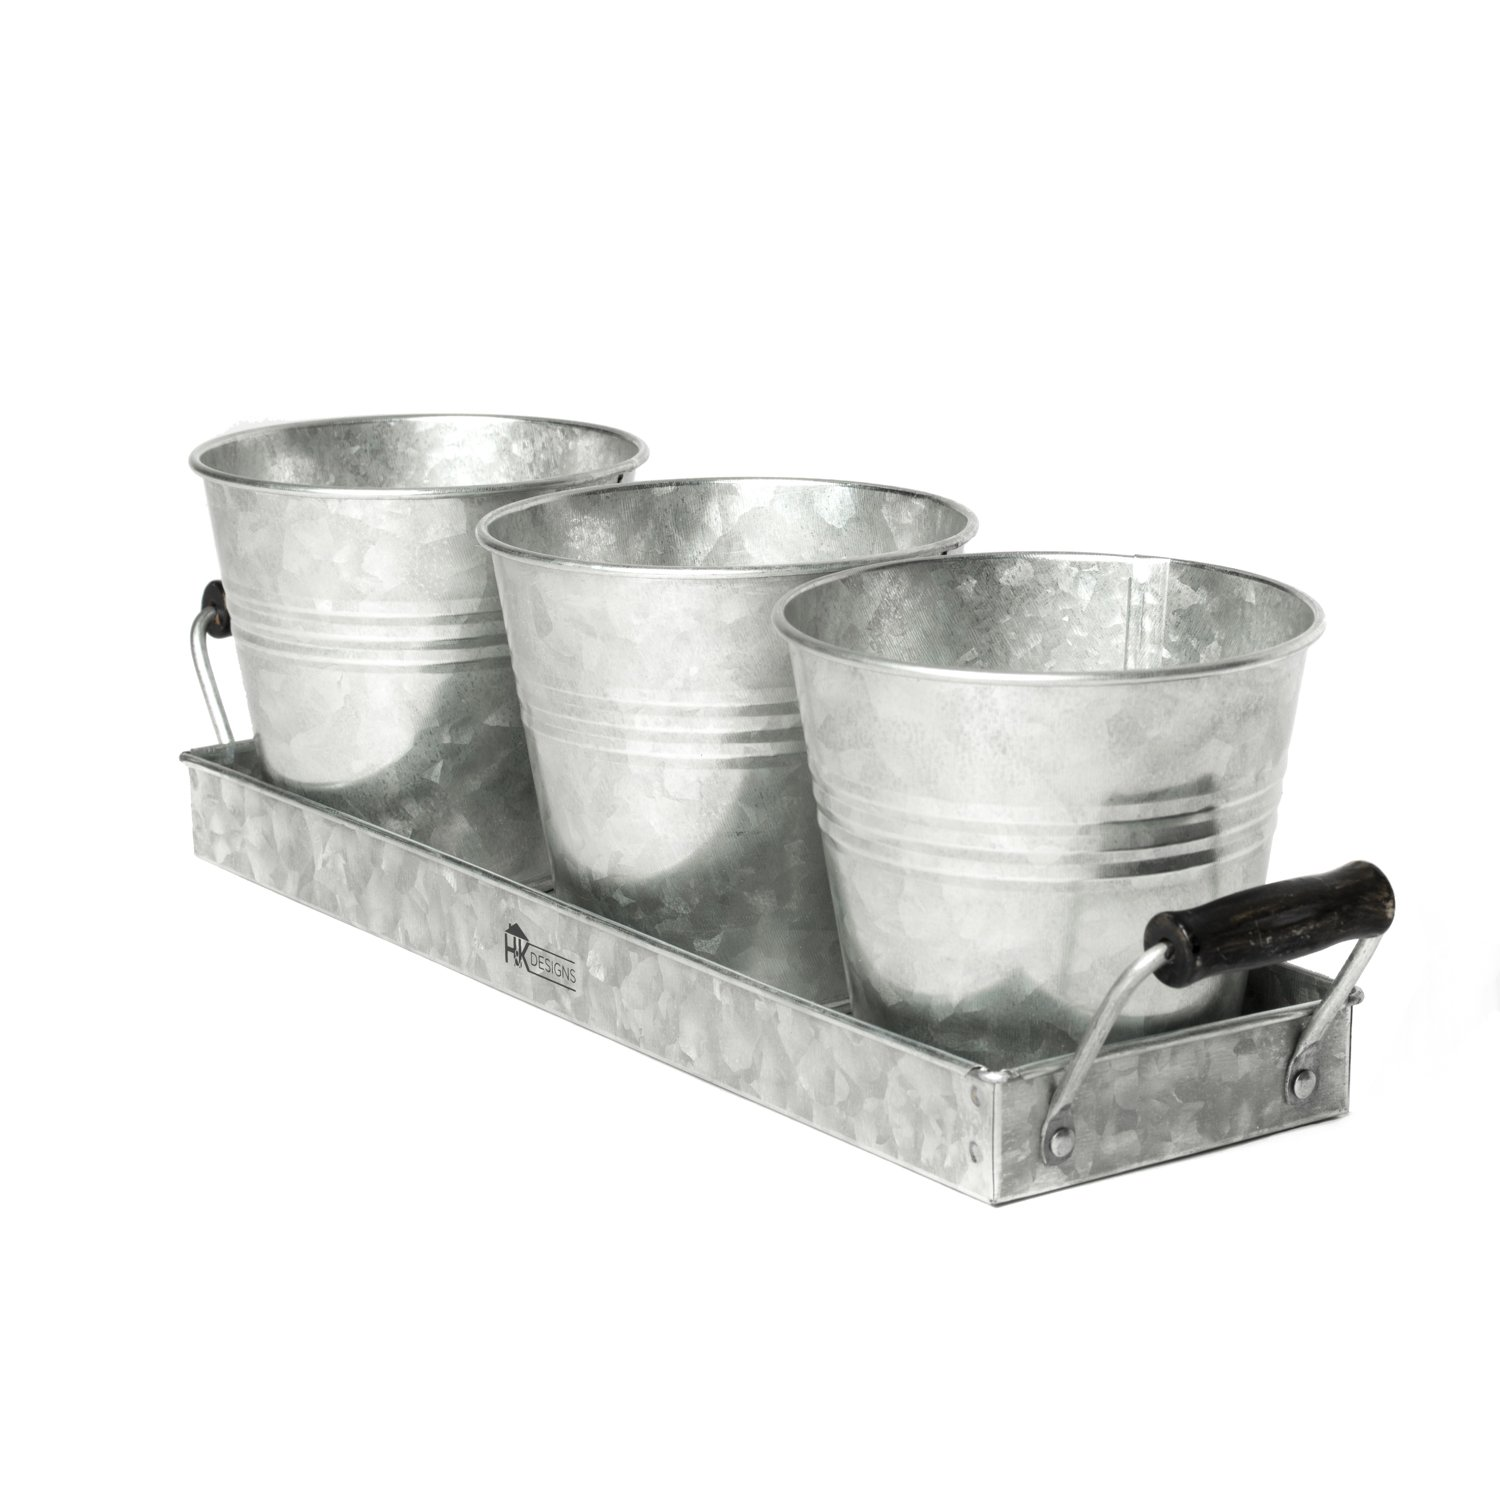 H & K Designs - Silverware Picnic Caddy - Farmhouse Decor, Galvanized Metal Planter with Wooden Handles and 3 Buckets - Rustic Tray Set Organizer AM3 Industries Inc. IR 14161